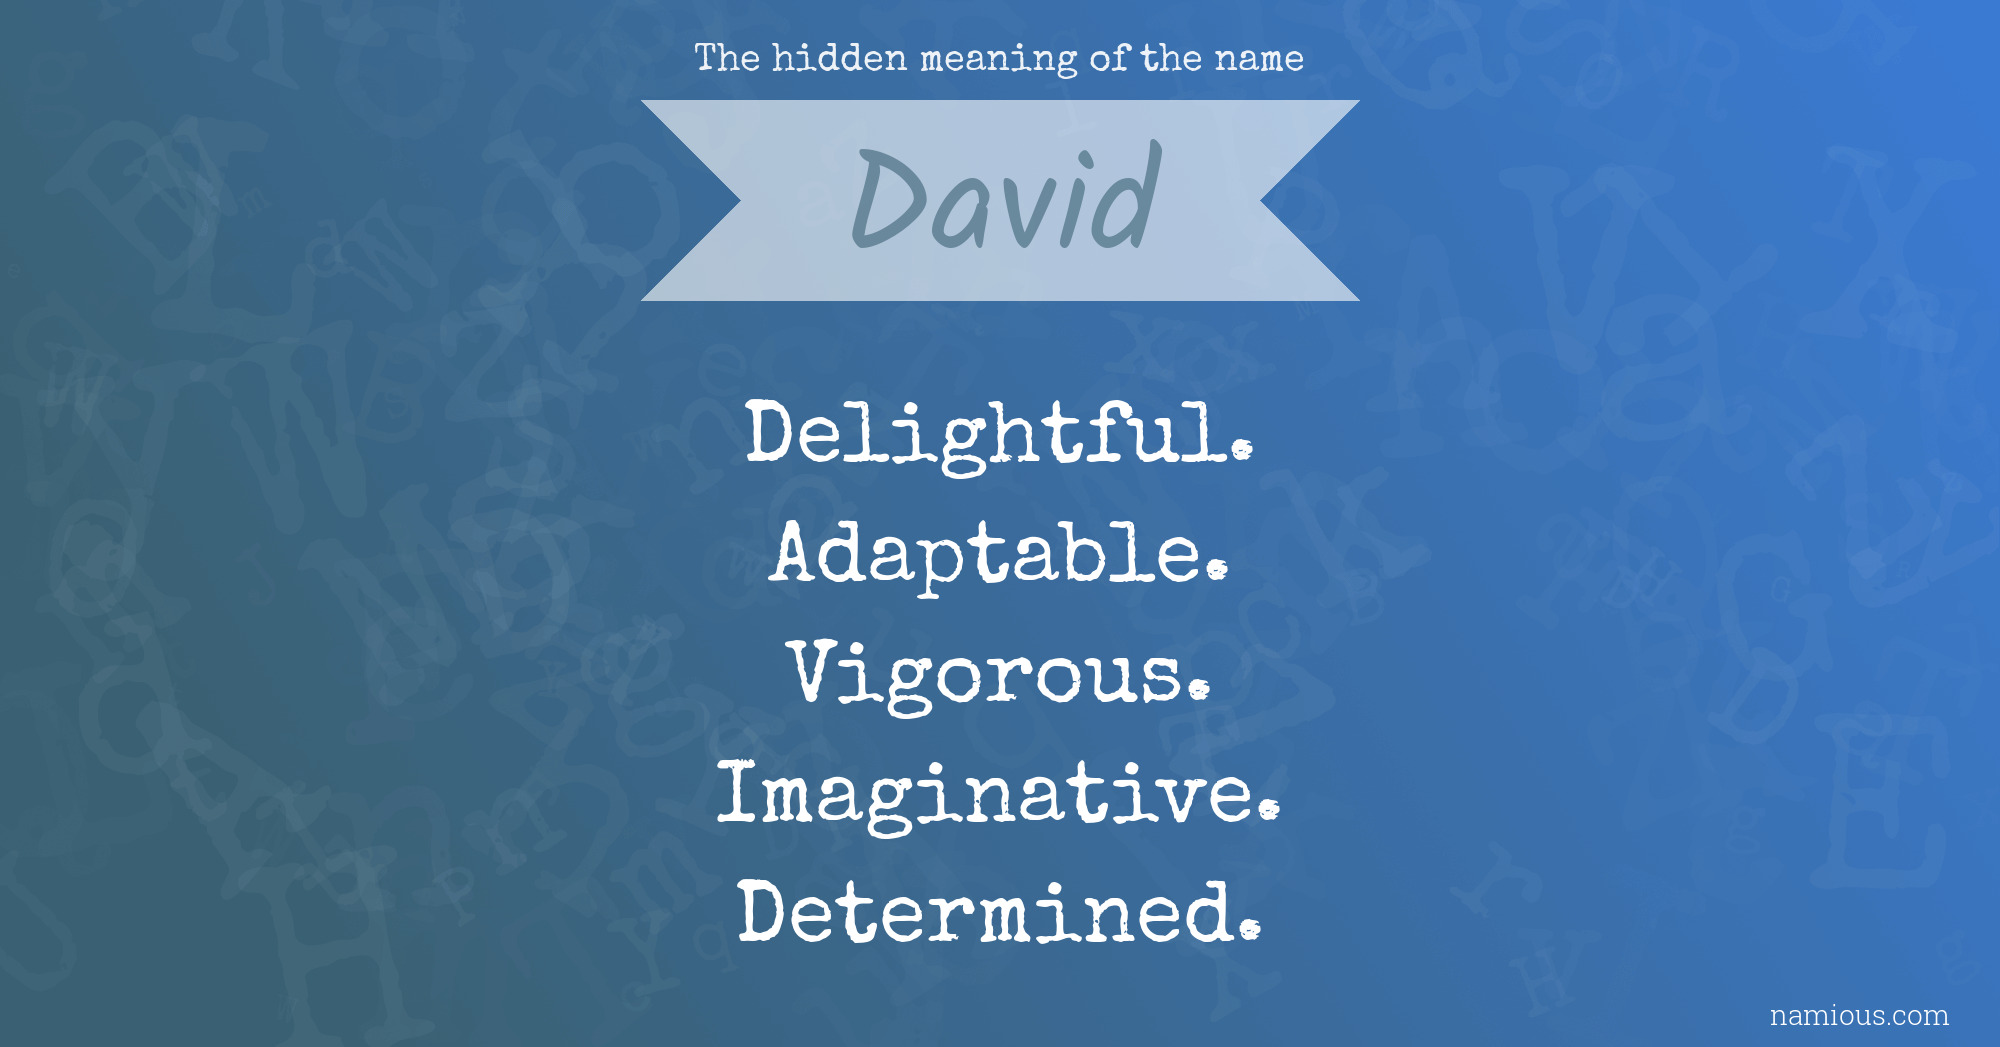 The hidden meaning of the name David